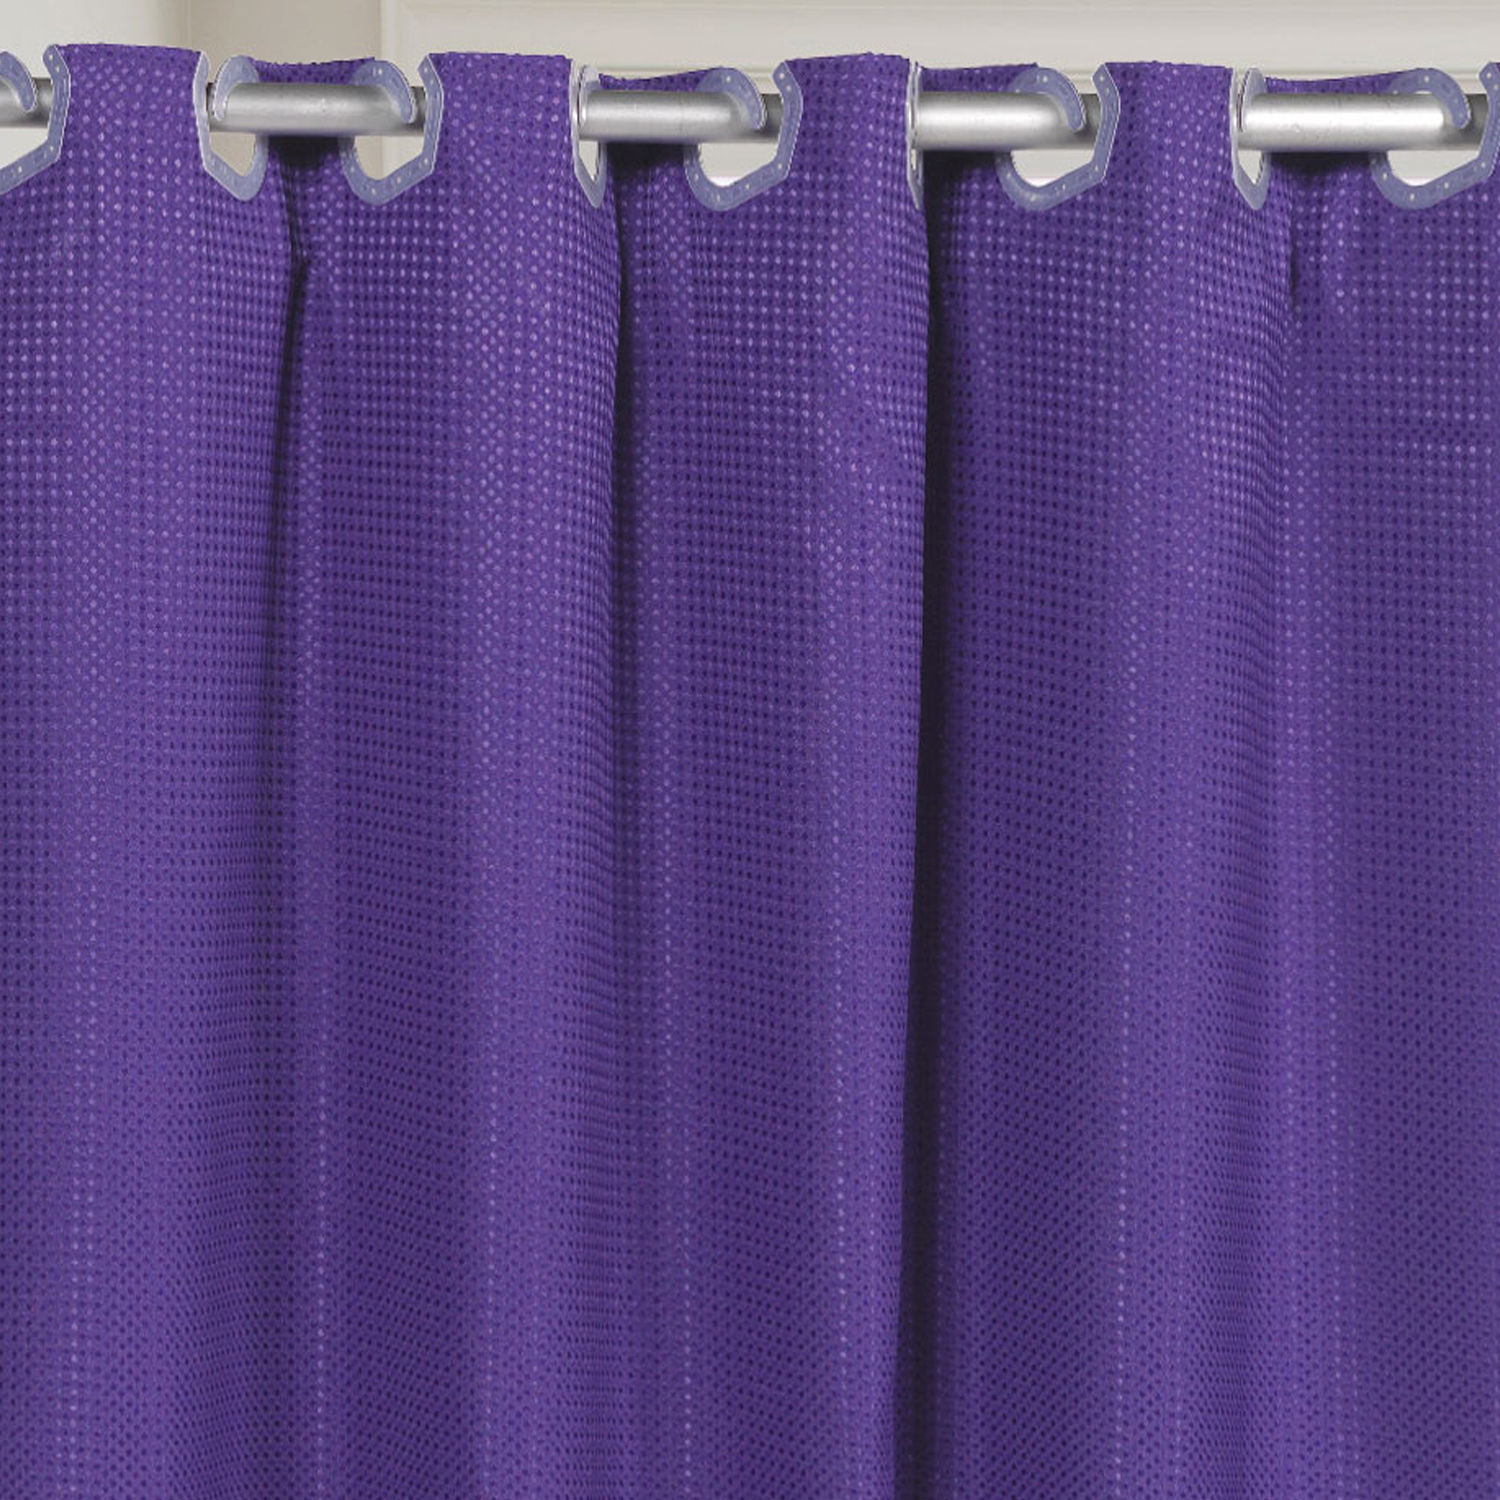 Fabric Shower Curtain Waffle Weave Hookless And 50 Similar Items